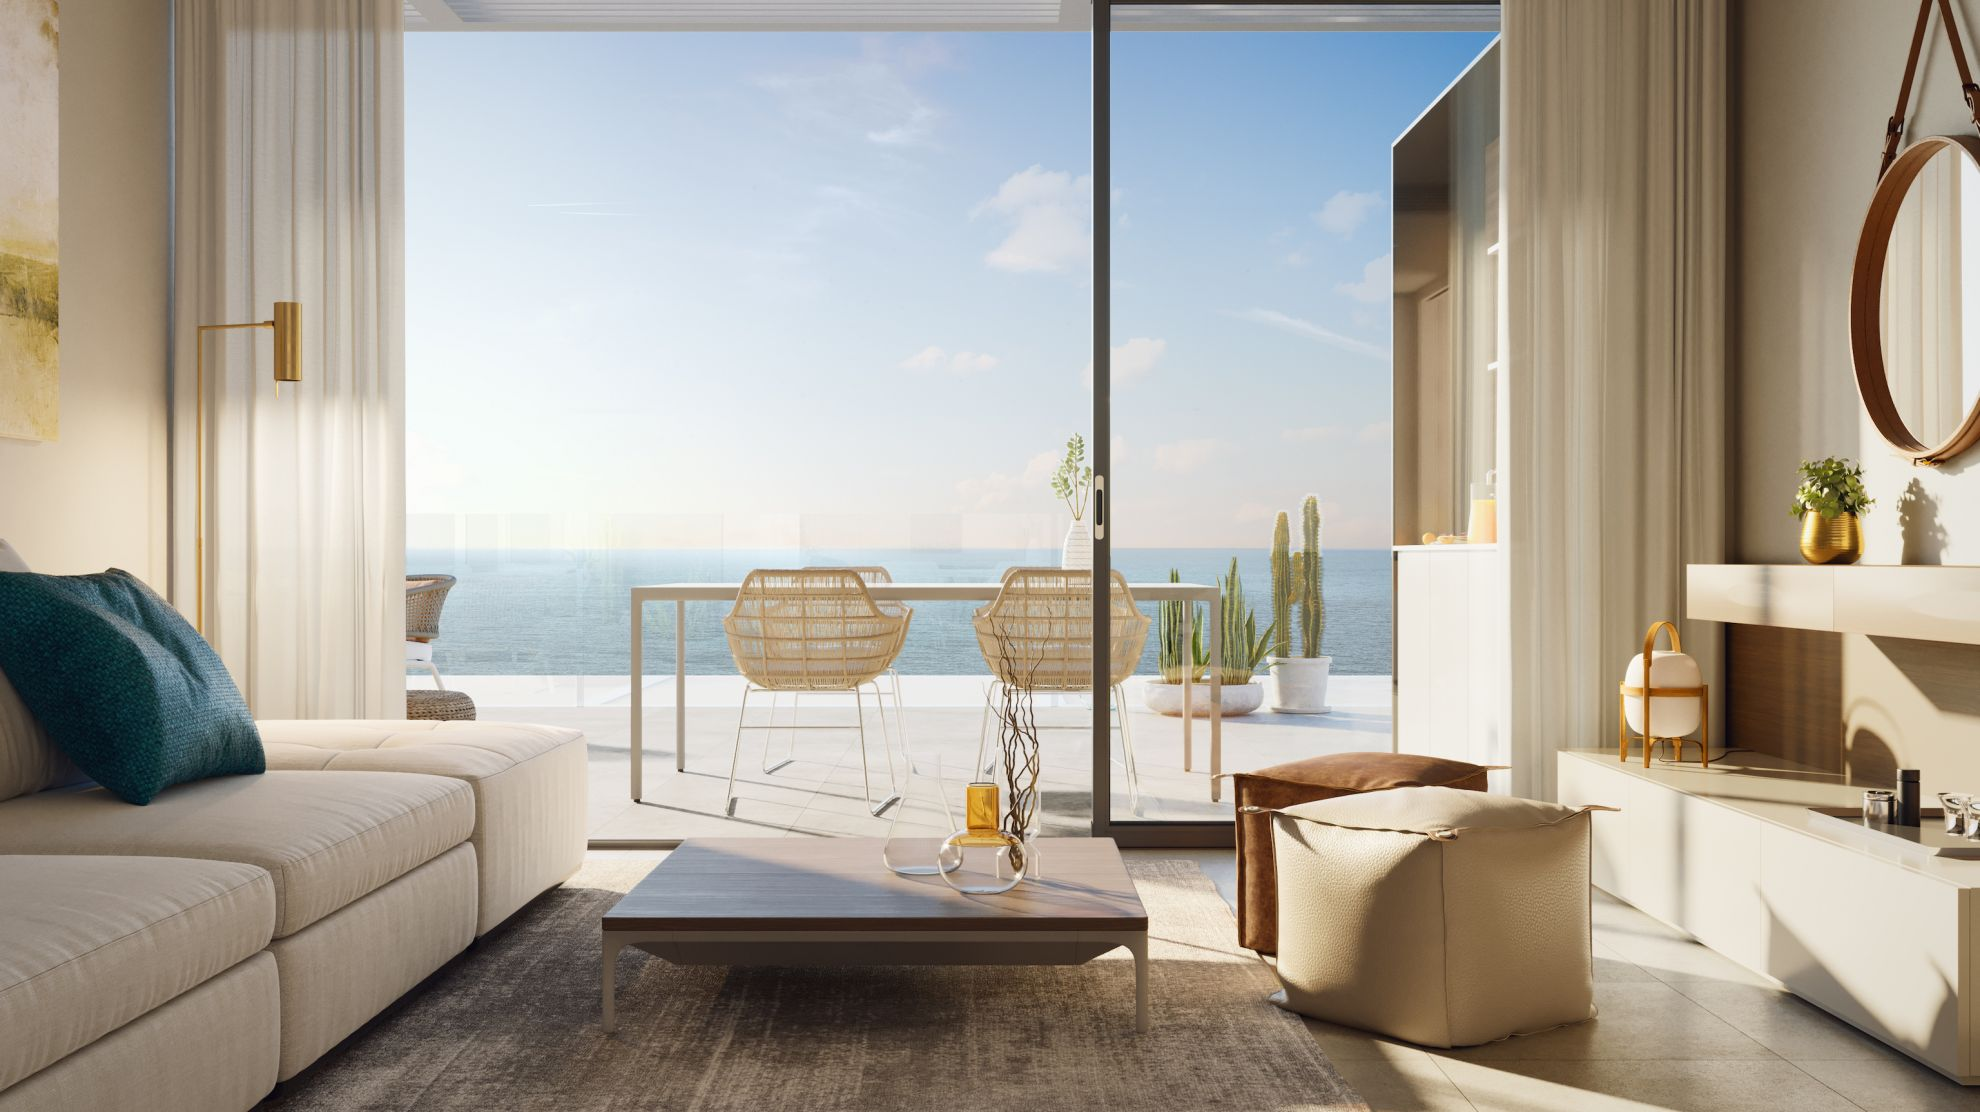 2 and 3 bedroom penthouse-style apartments with big terraces overlookg the sea. House 26 11